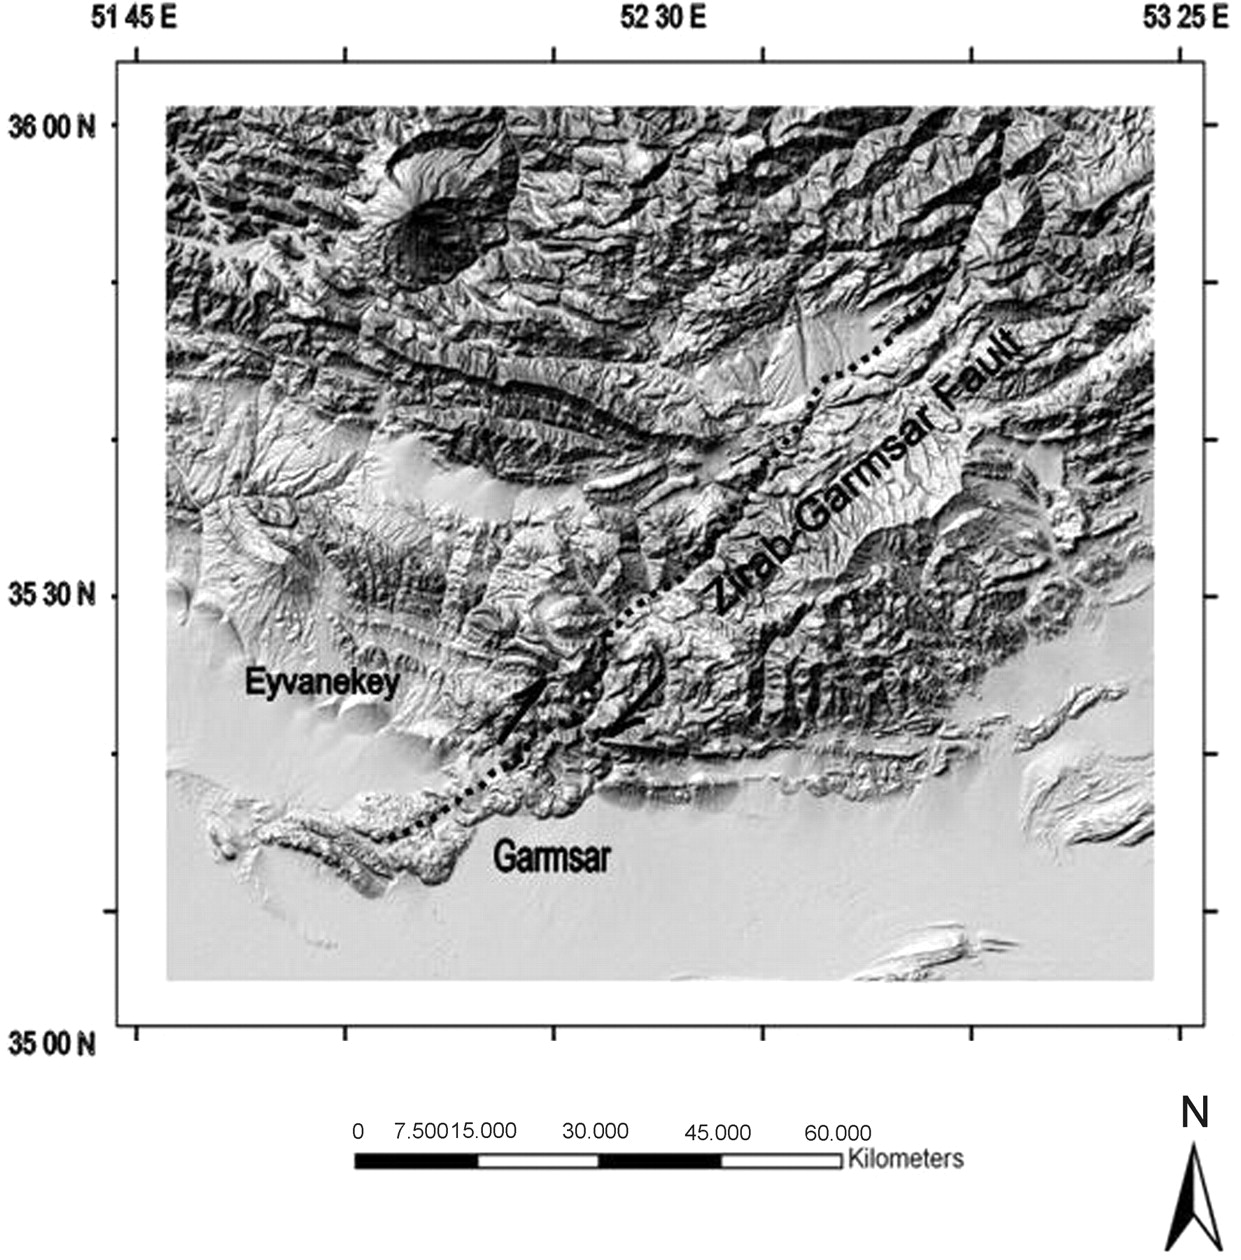 InSAR maps and time series observations of surface